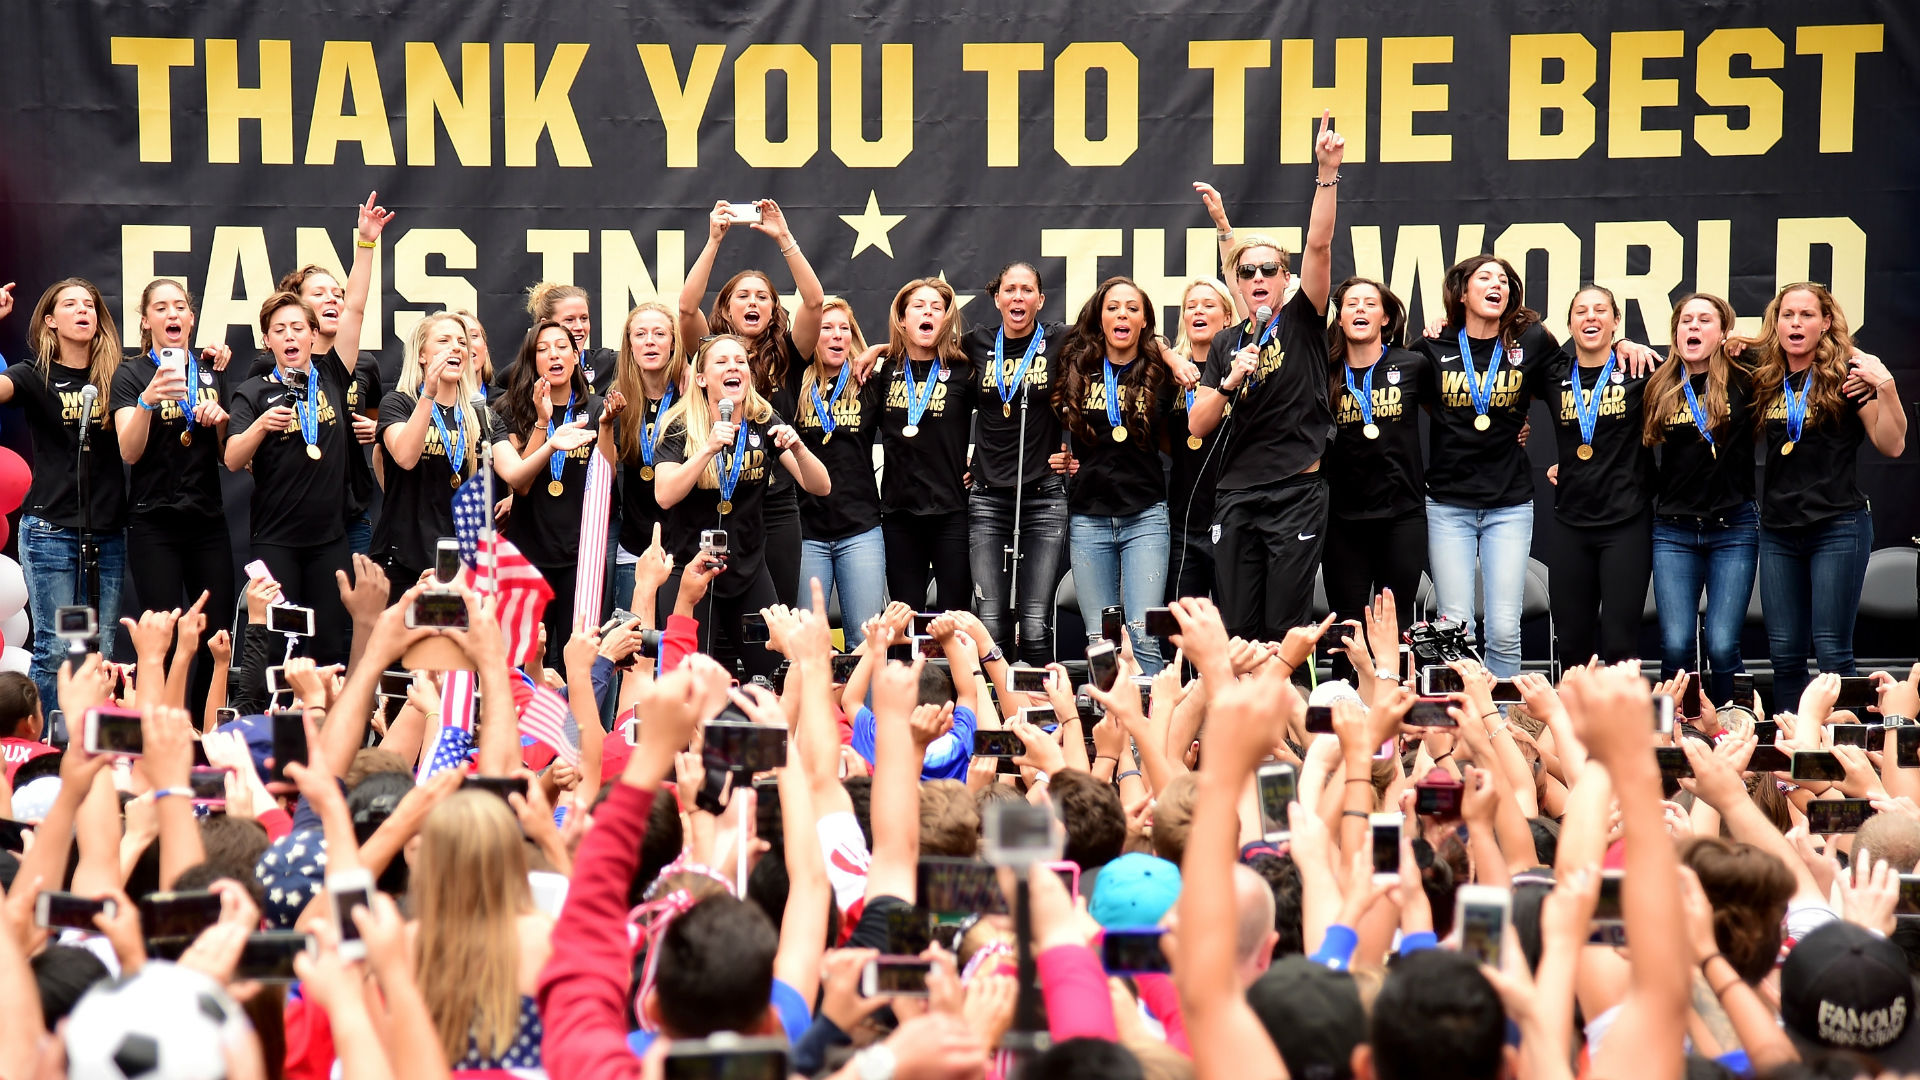 U.S. Women's World Cup team set for ticker-tape parade in New York